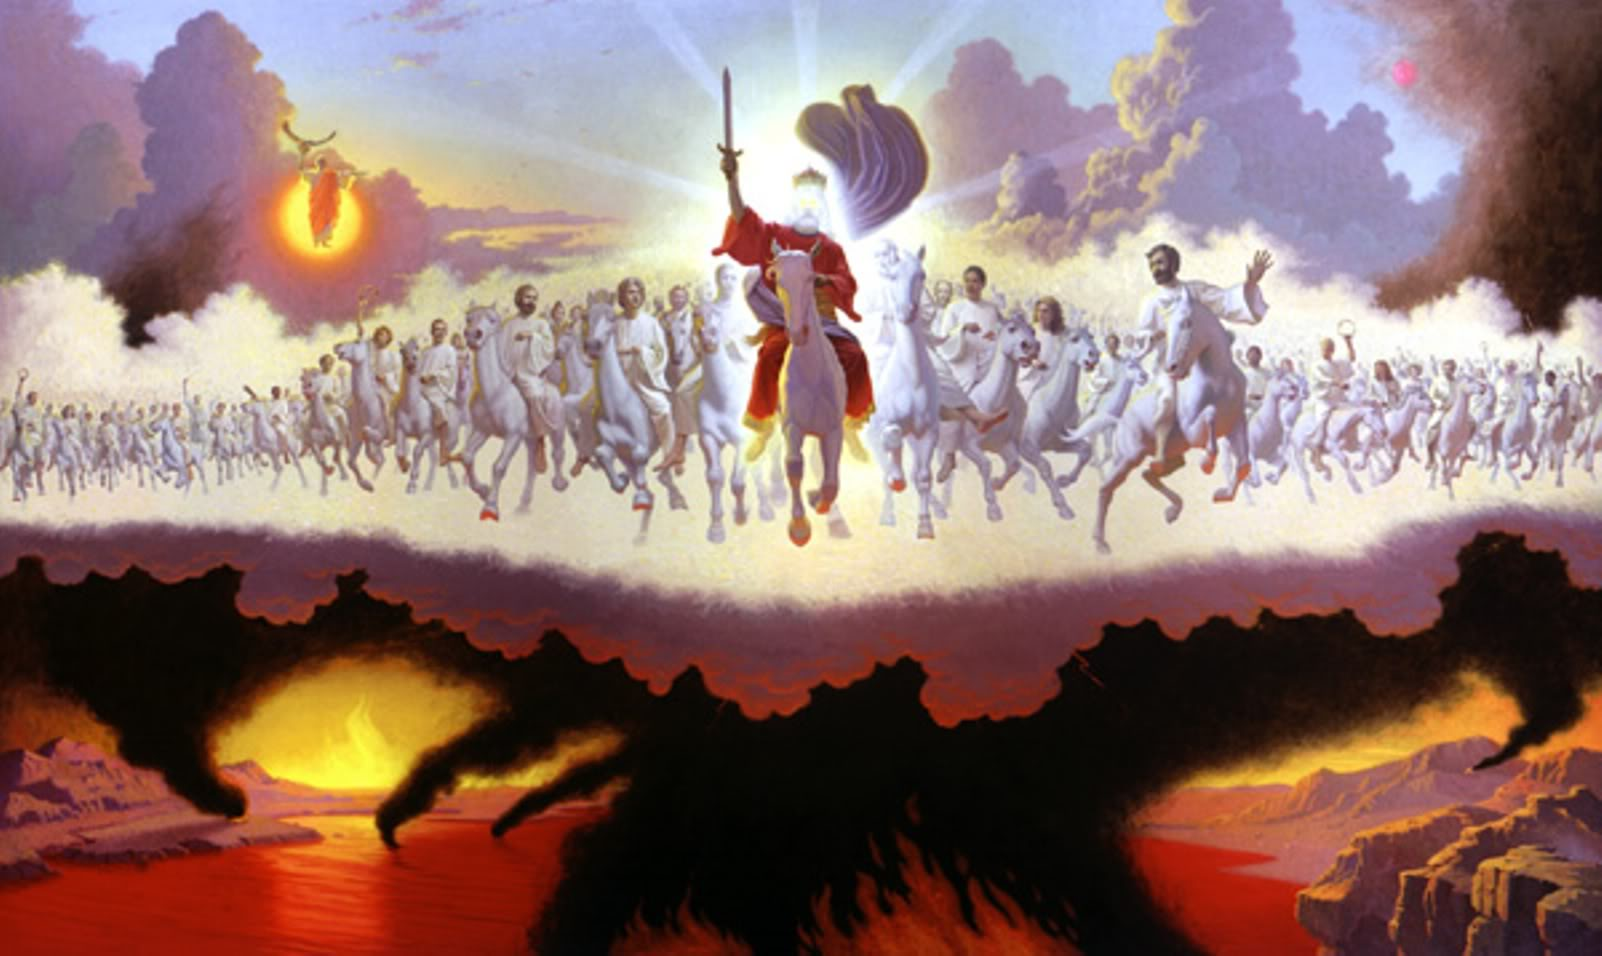 Armageddon is the divine mission of President Donald Trump, in the White House for that purpose.